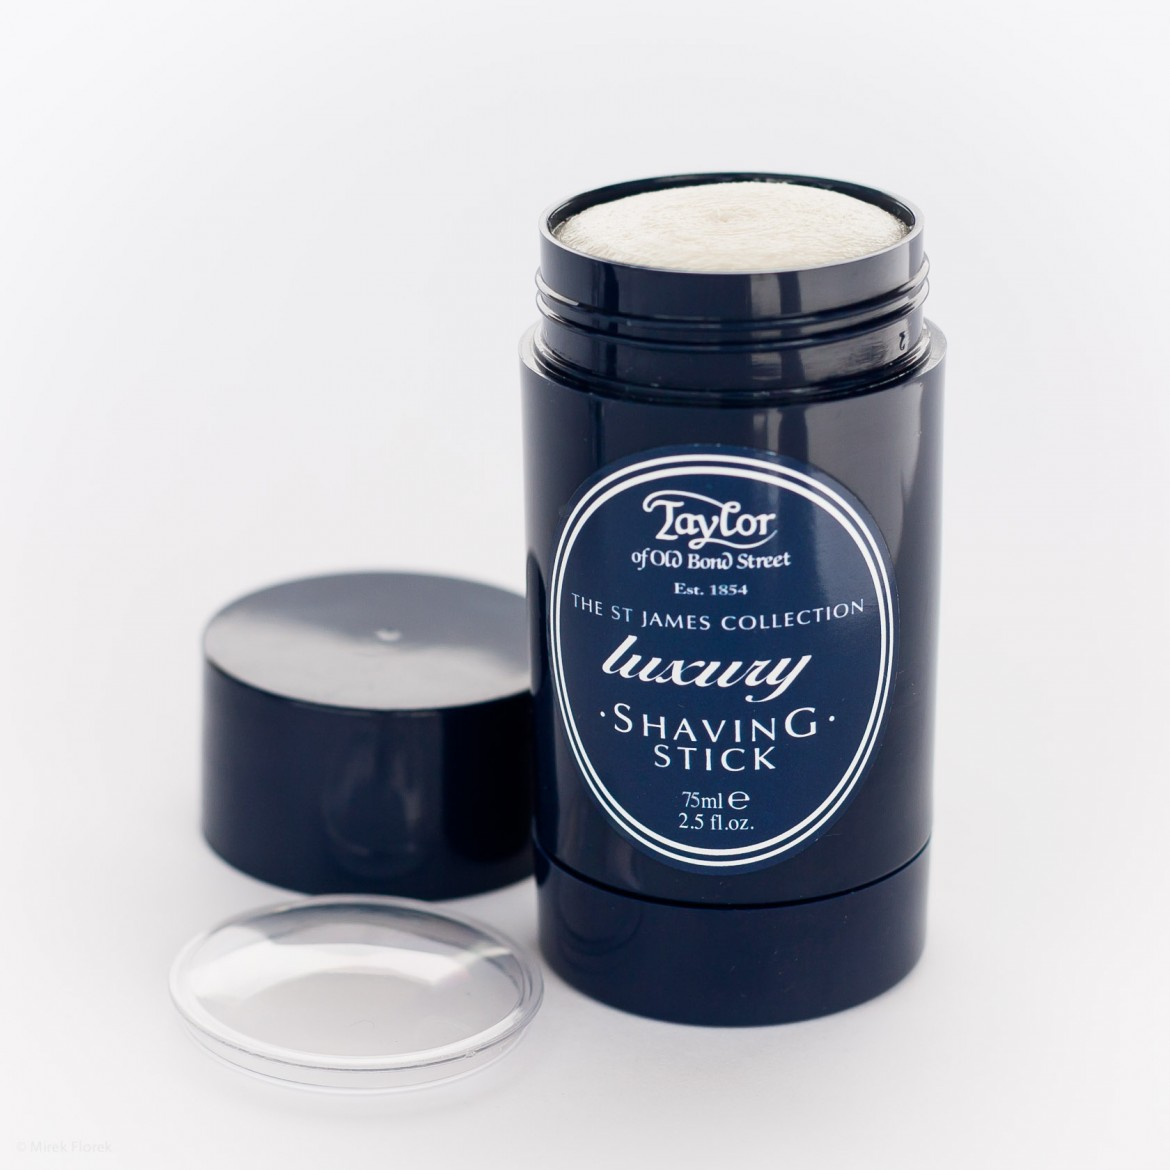 Sztyft do golenia Taylor of Old Bond Street Luxury Shaving Stick